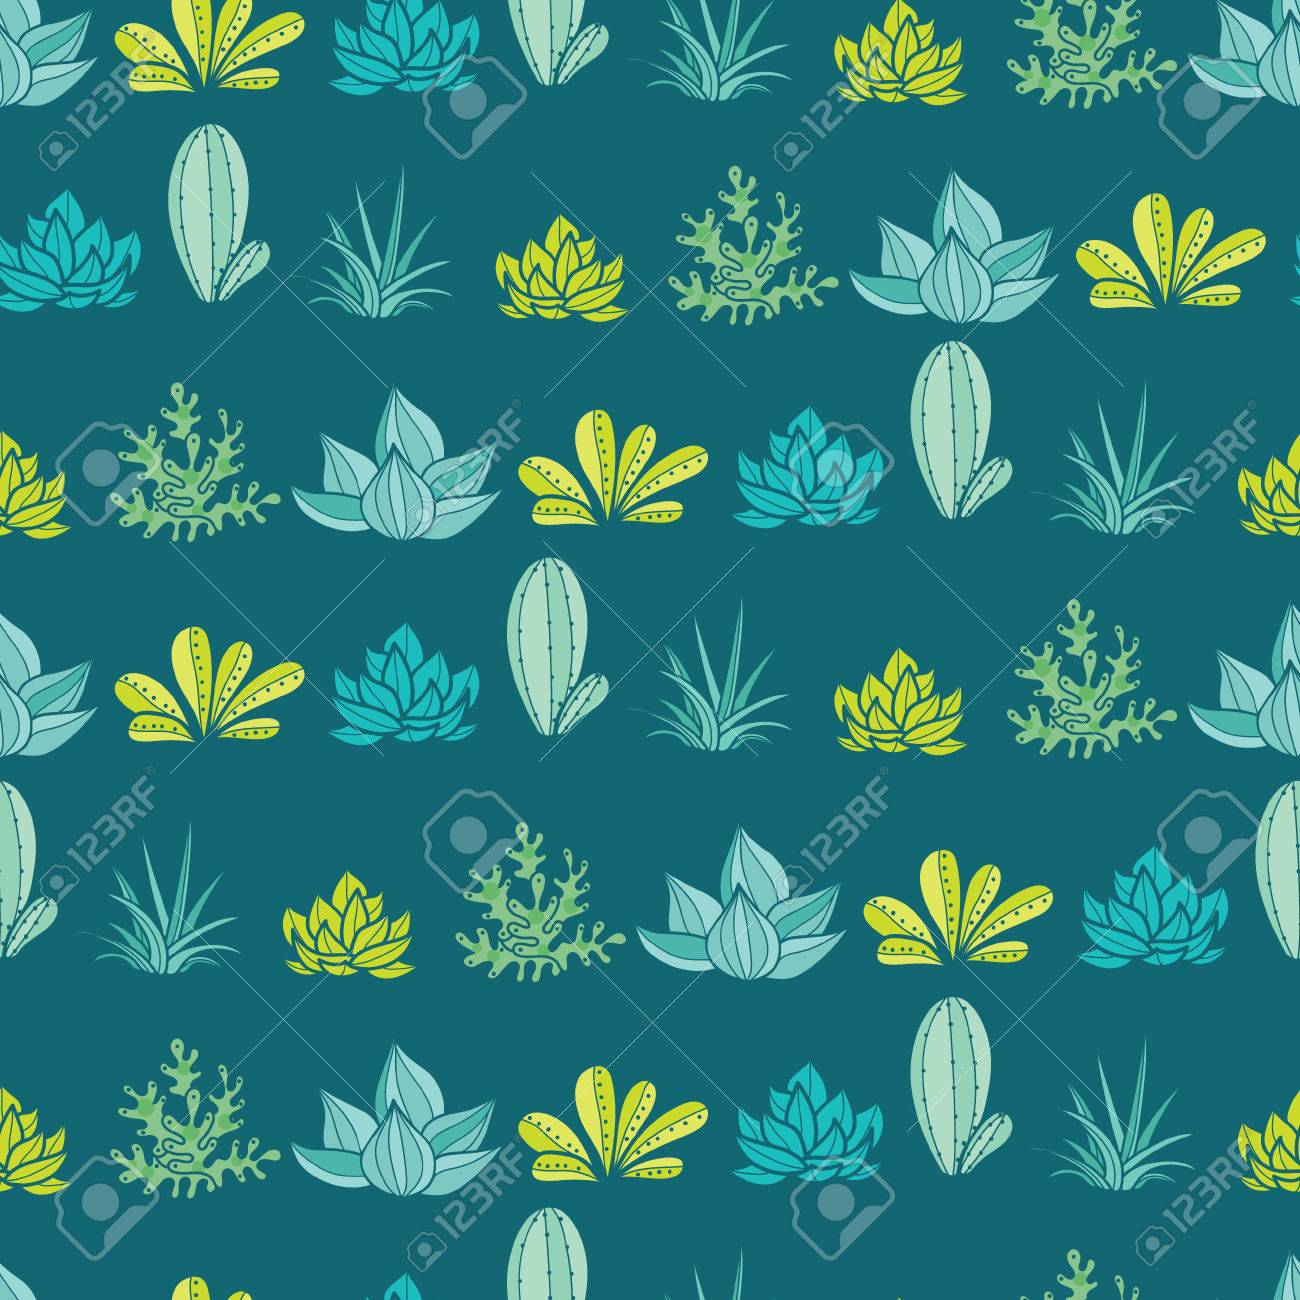 Vector Dark Blue Green Stripes Seamless Repeat Pattern With Growing Royalty Free Cliparts Vectors And Stock Illustration Image 76372816